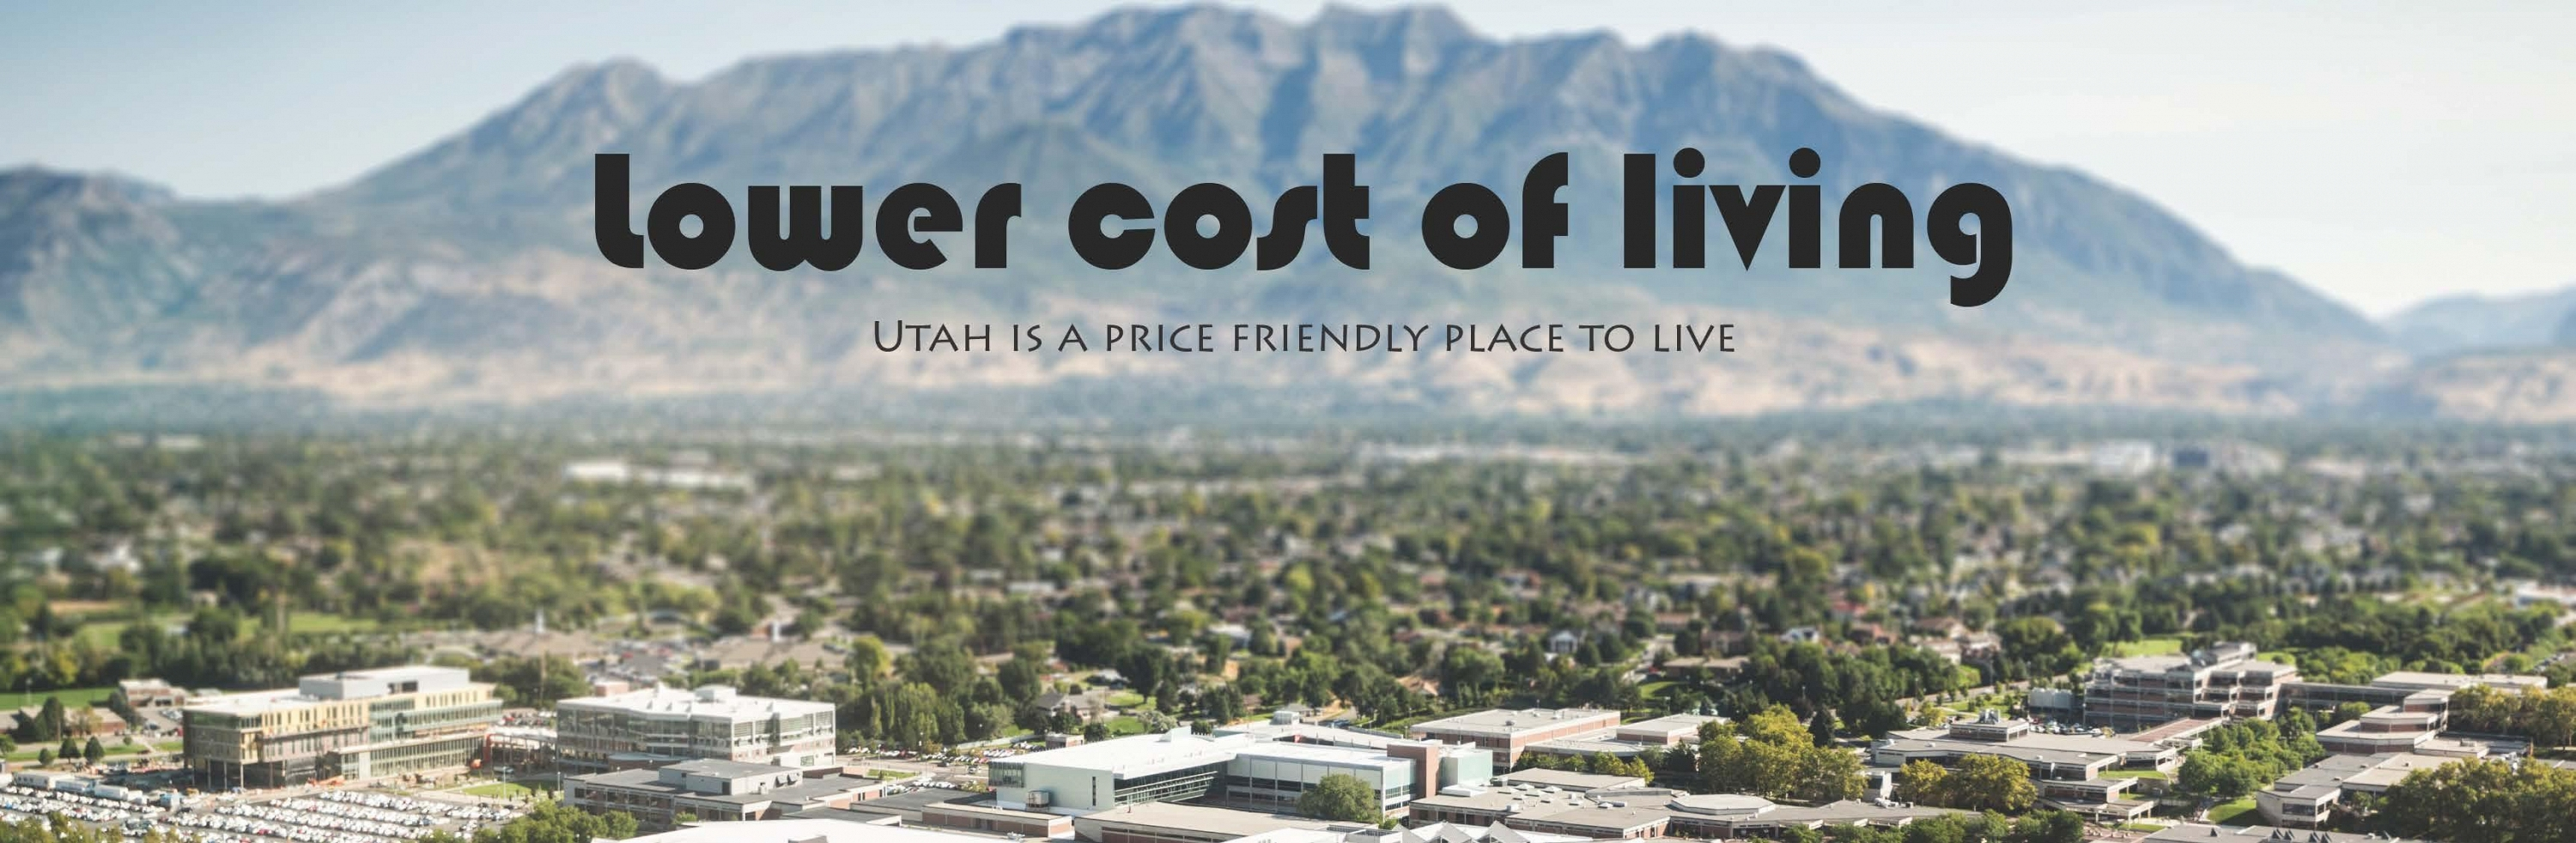 Utah is a price-friendly place to live